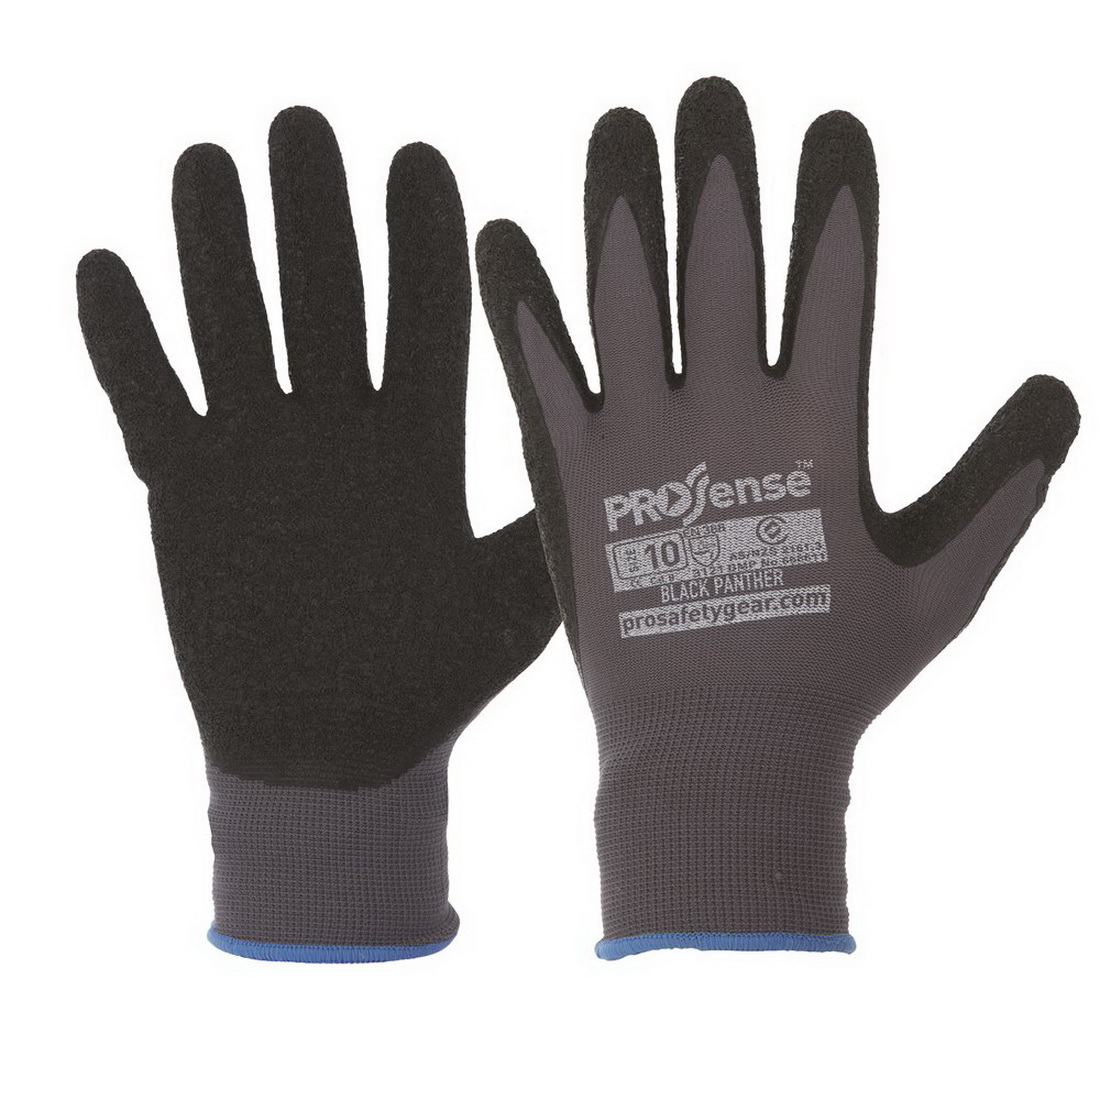 Prosense Black Panther Synthetic Dipped Gloves